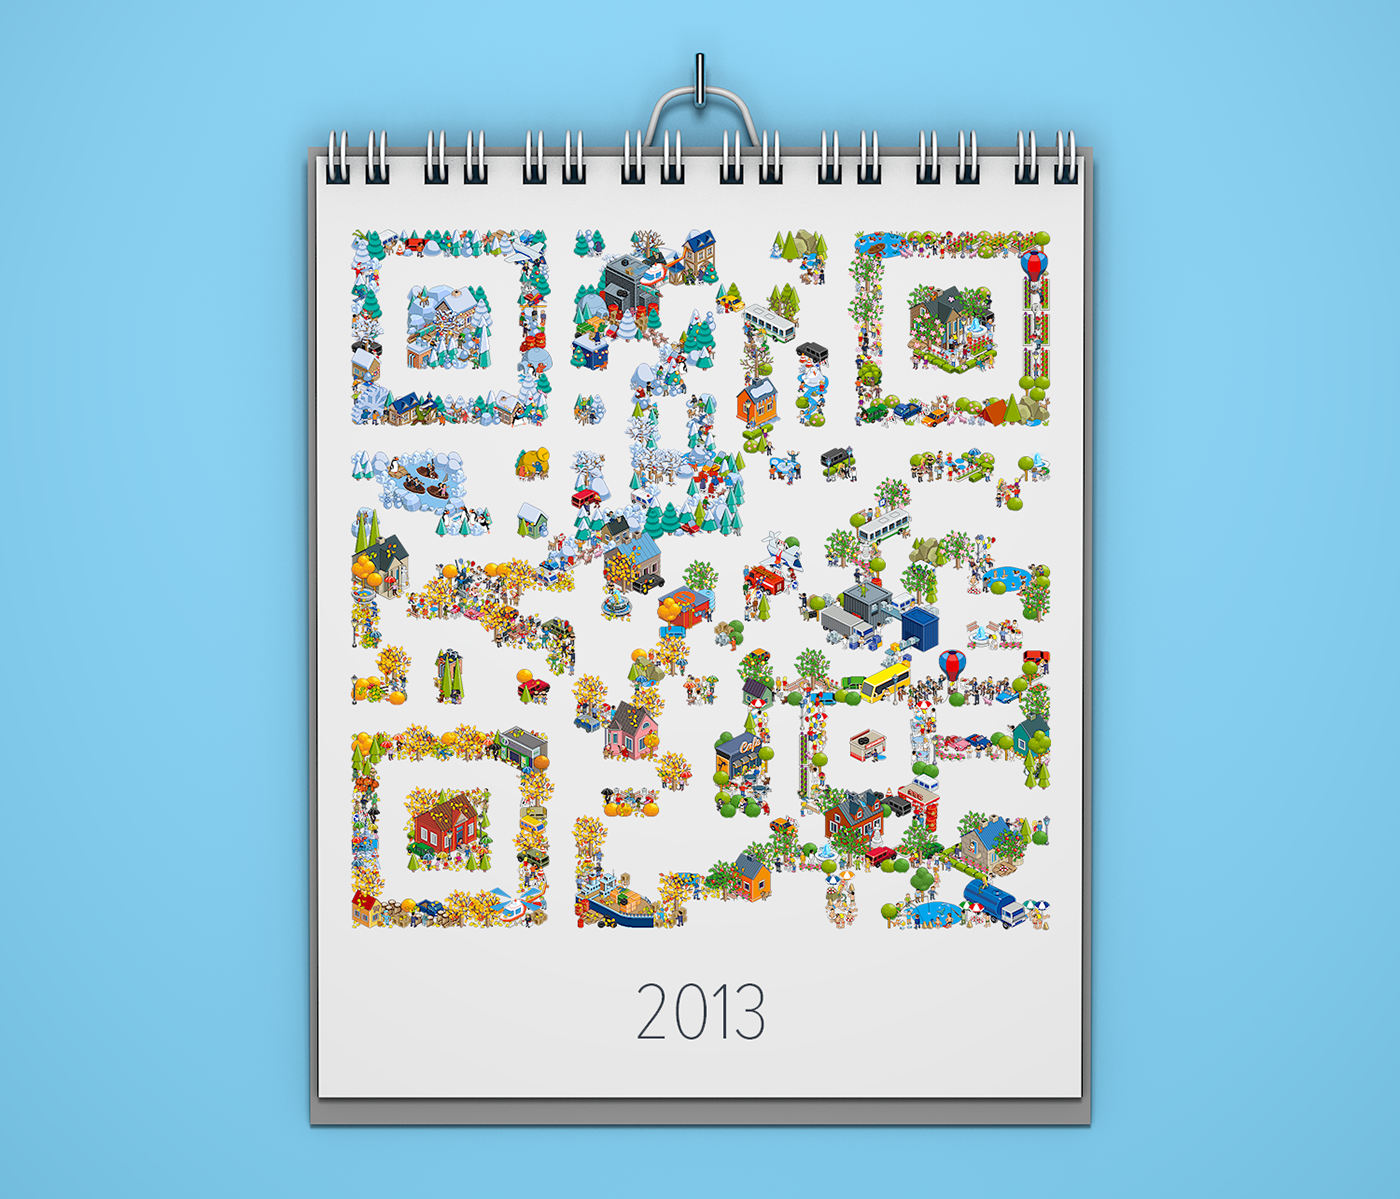 QR-code from pixel-art elements